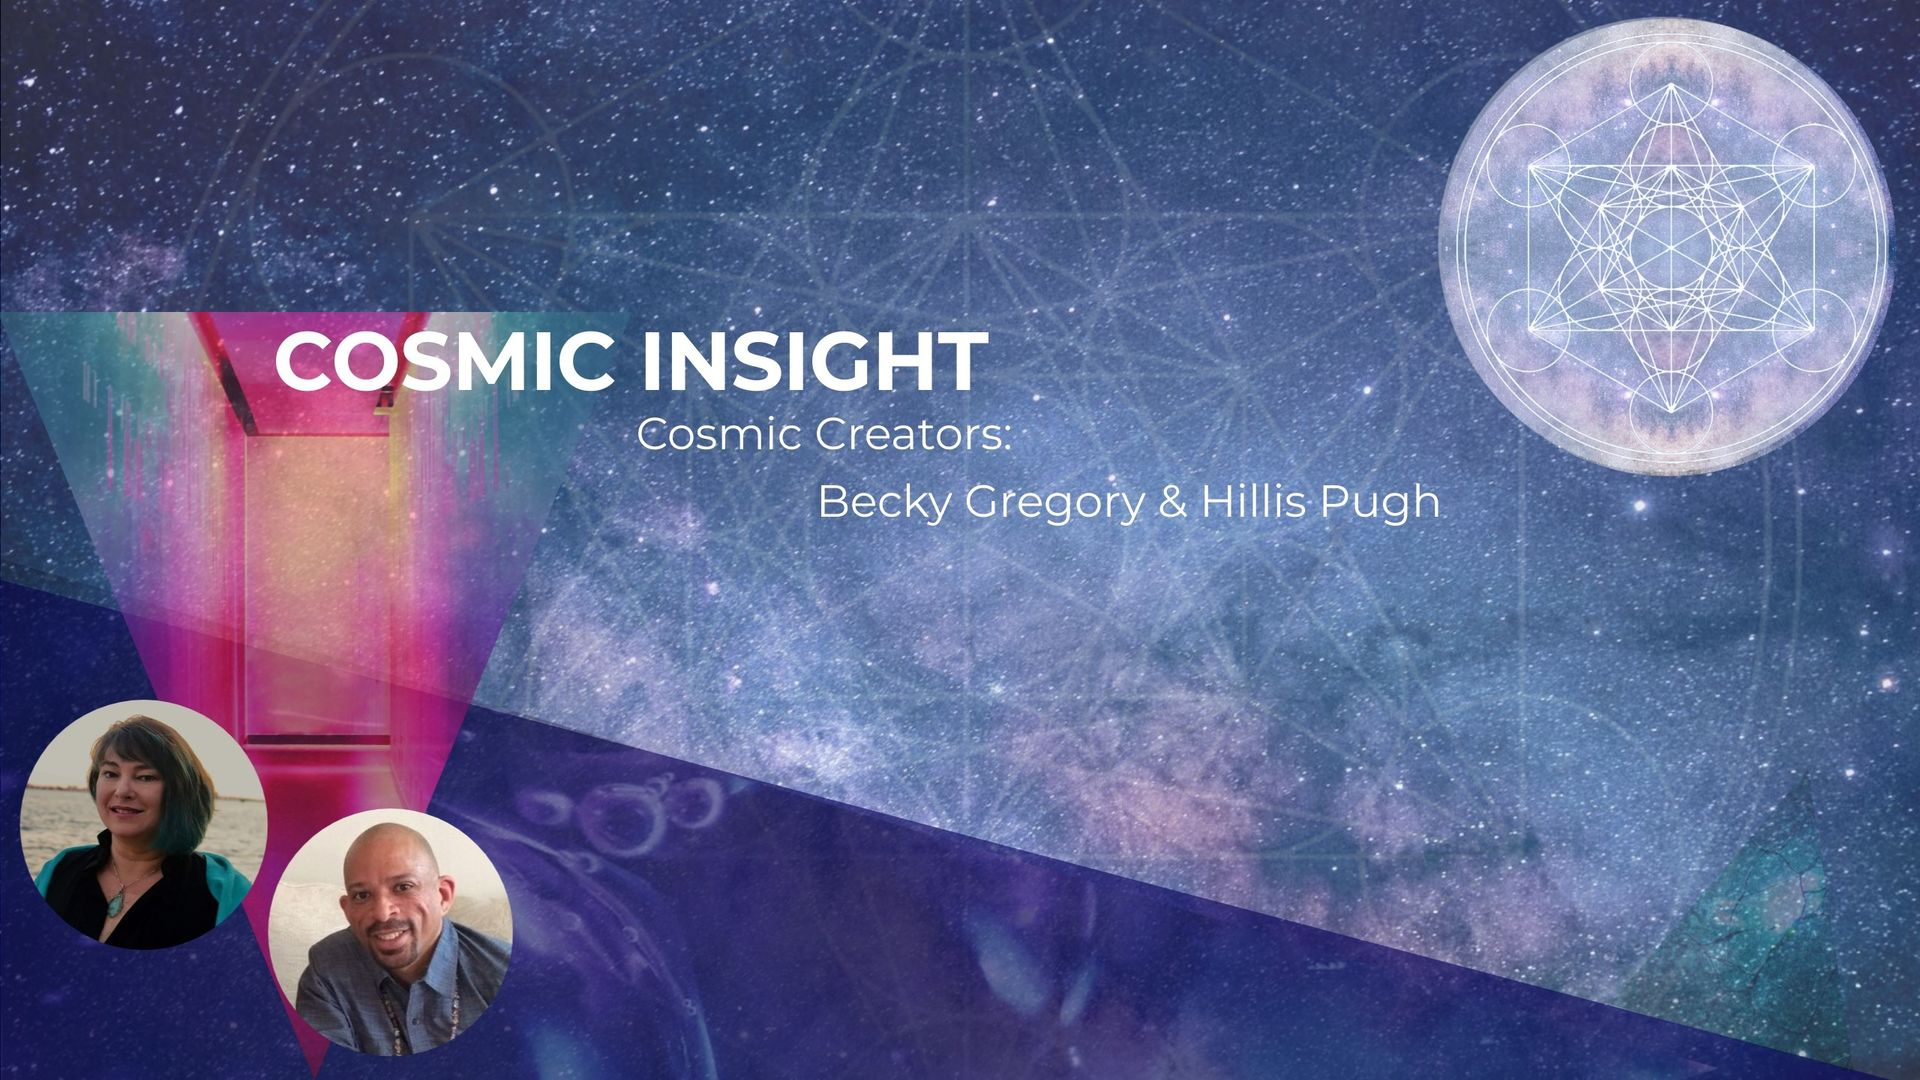 THE CREATION OF COSMIC INSIGHT